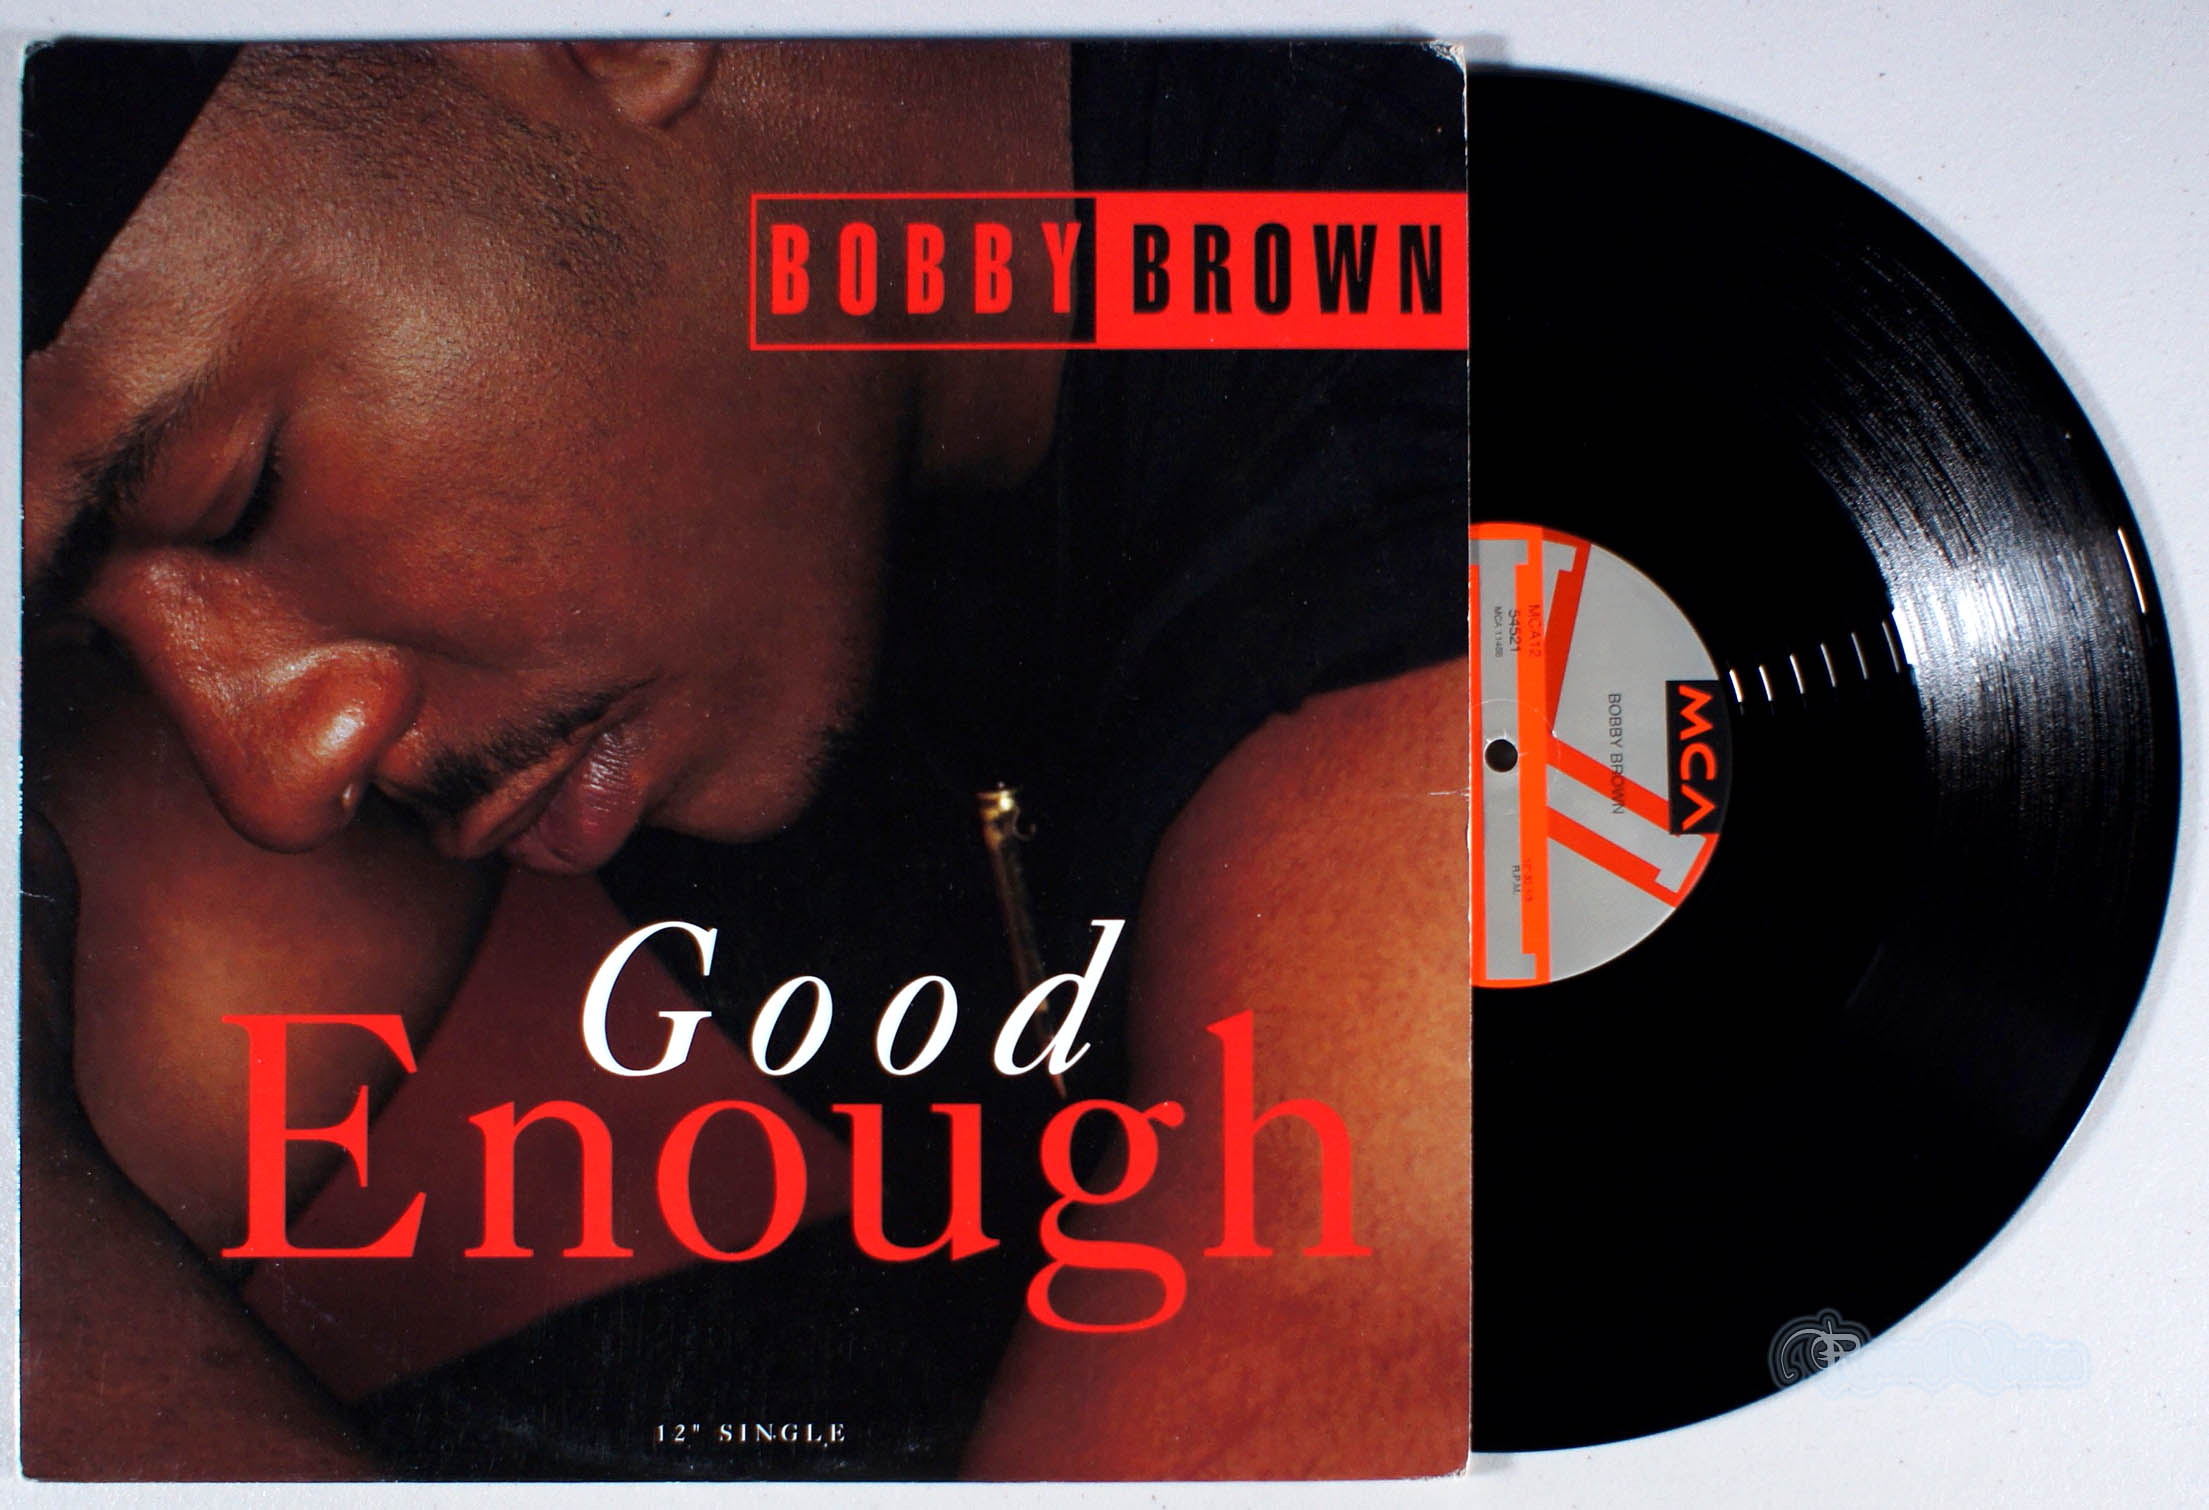 BOBBY BROWN - Good Enough - 12 inch x 1